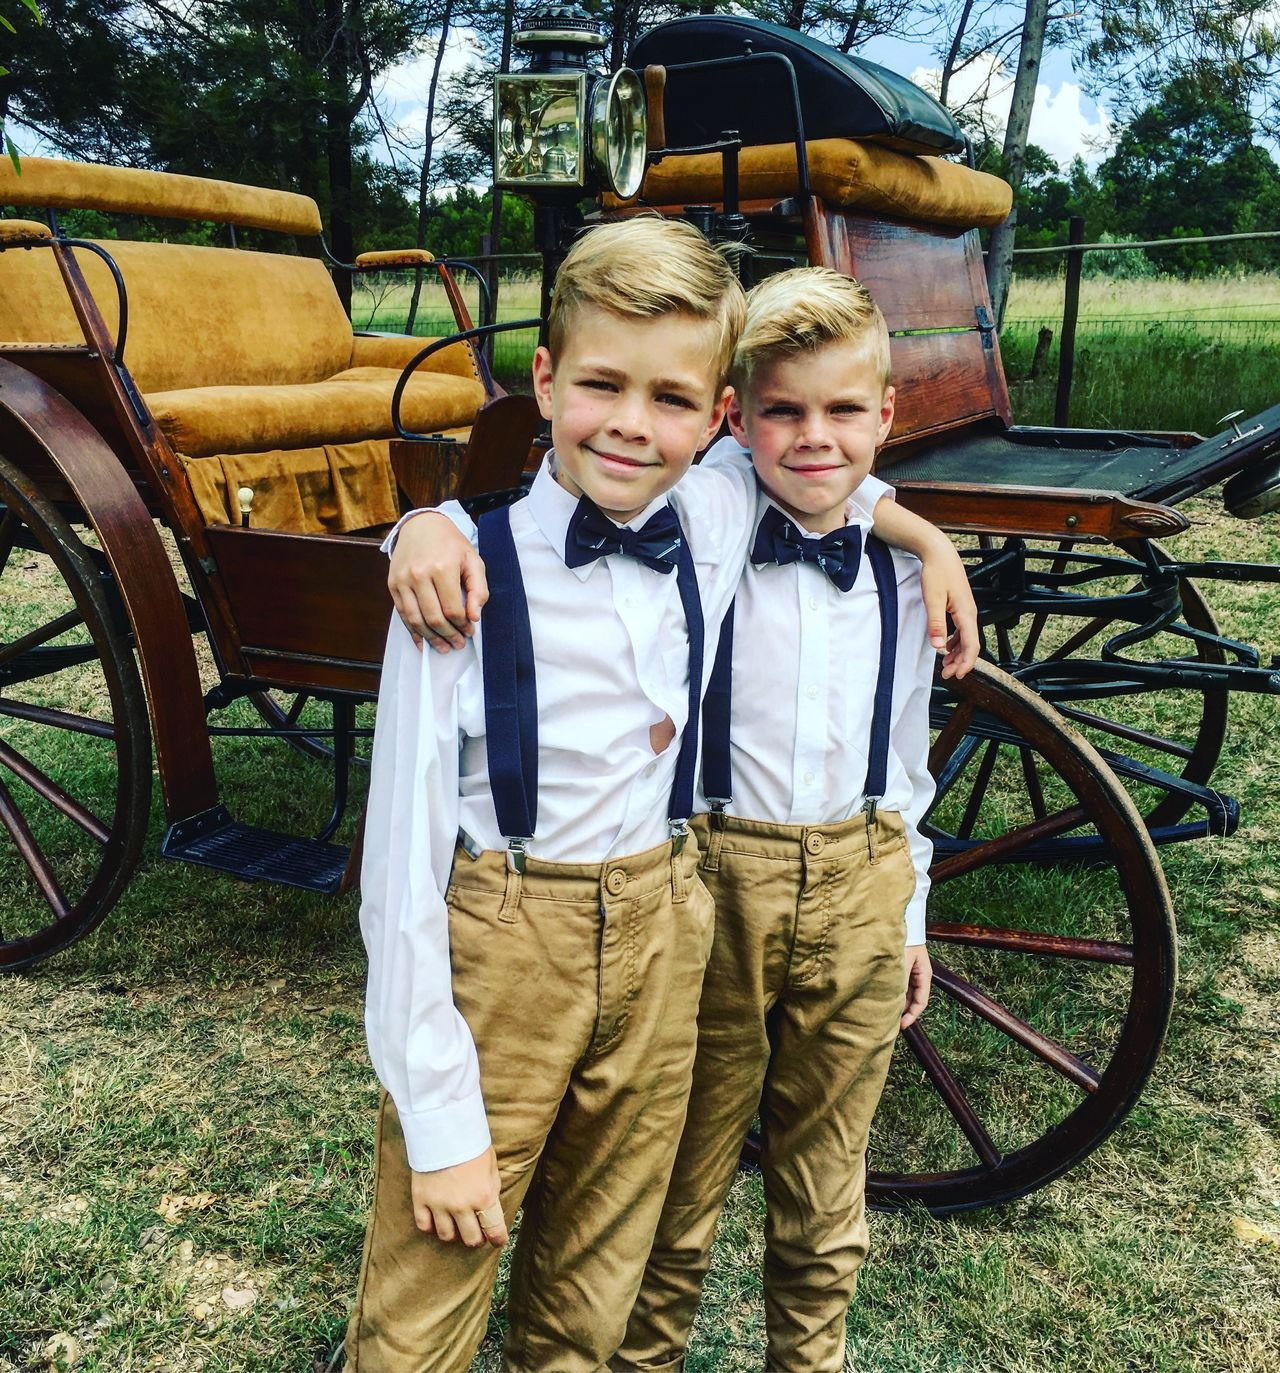 Boys Casual Clothing Childhood Day Front View Happiness Land Vehicle Looking At Camera Mode Of Transport Outdoors Portrait Real People Sibling Smiling Togetherness Transportation Two People